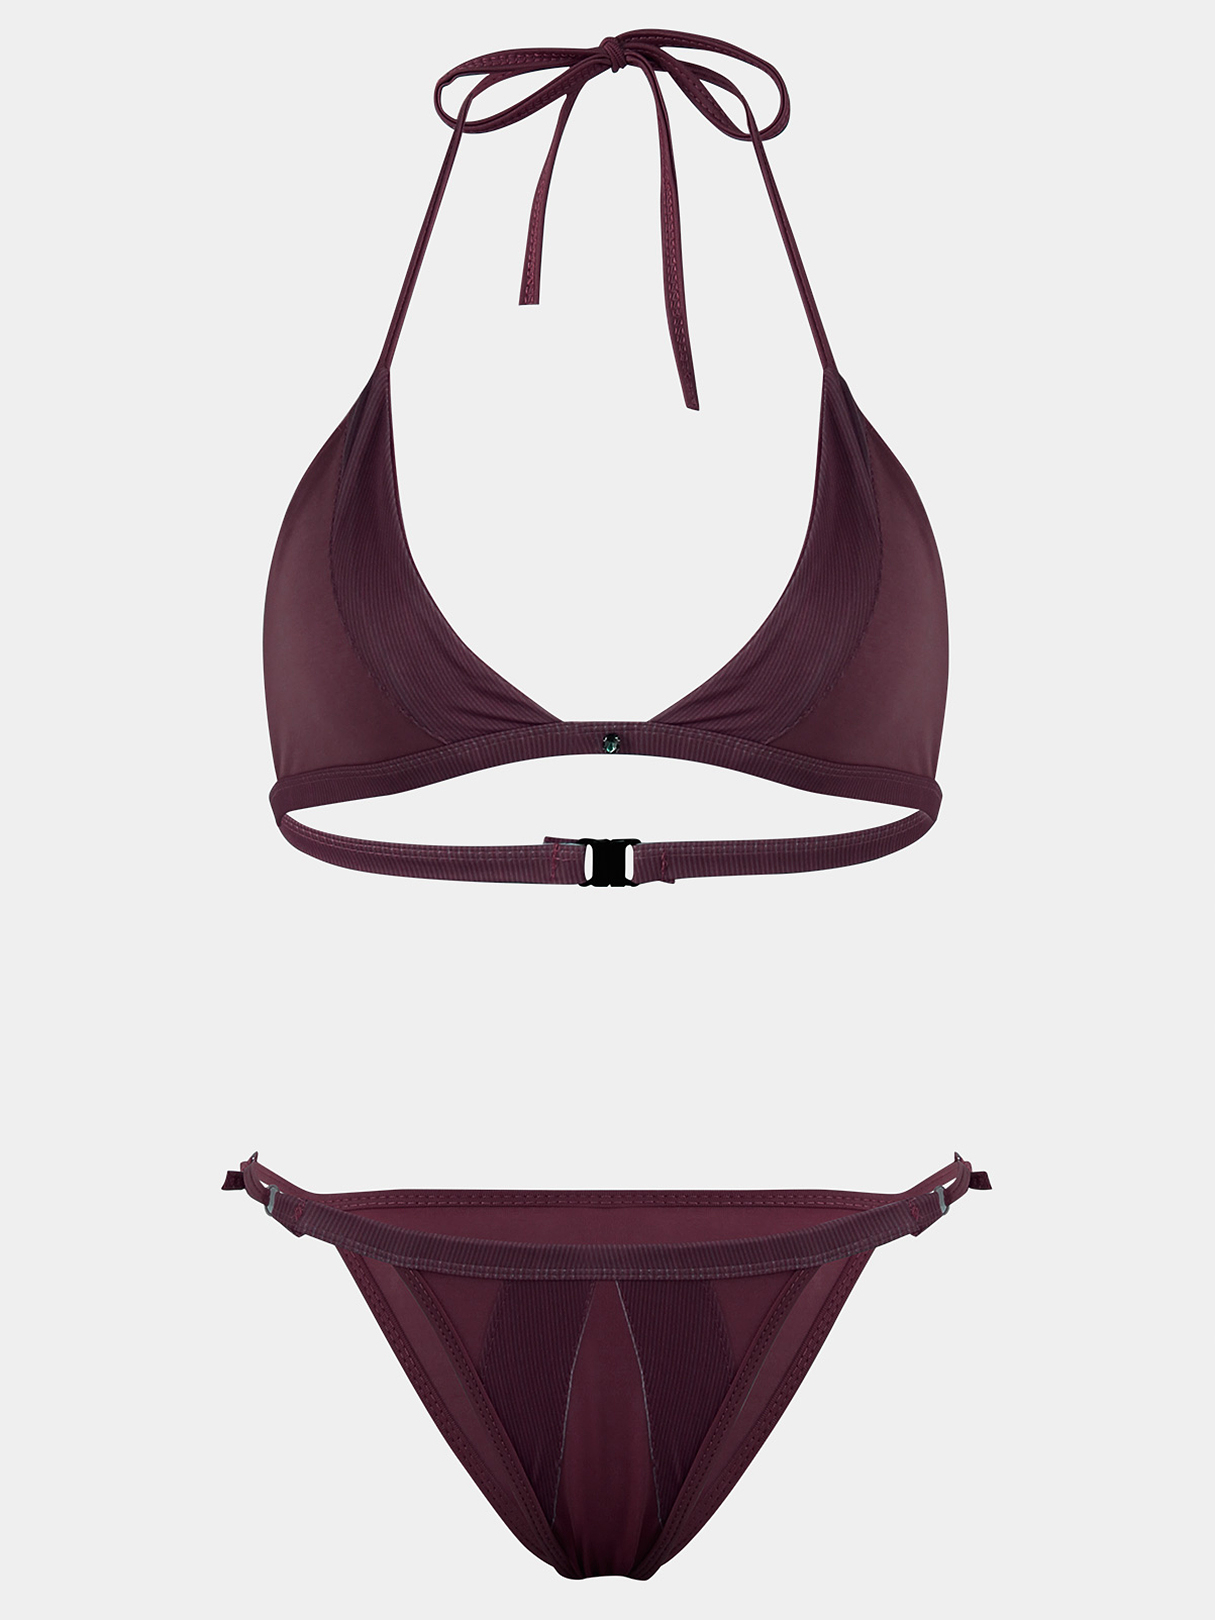 Burgundy Adjustable Neck Straps Lace Up Details Without Padded & Steel Bikini